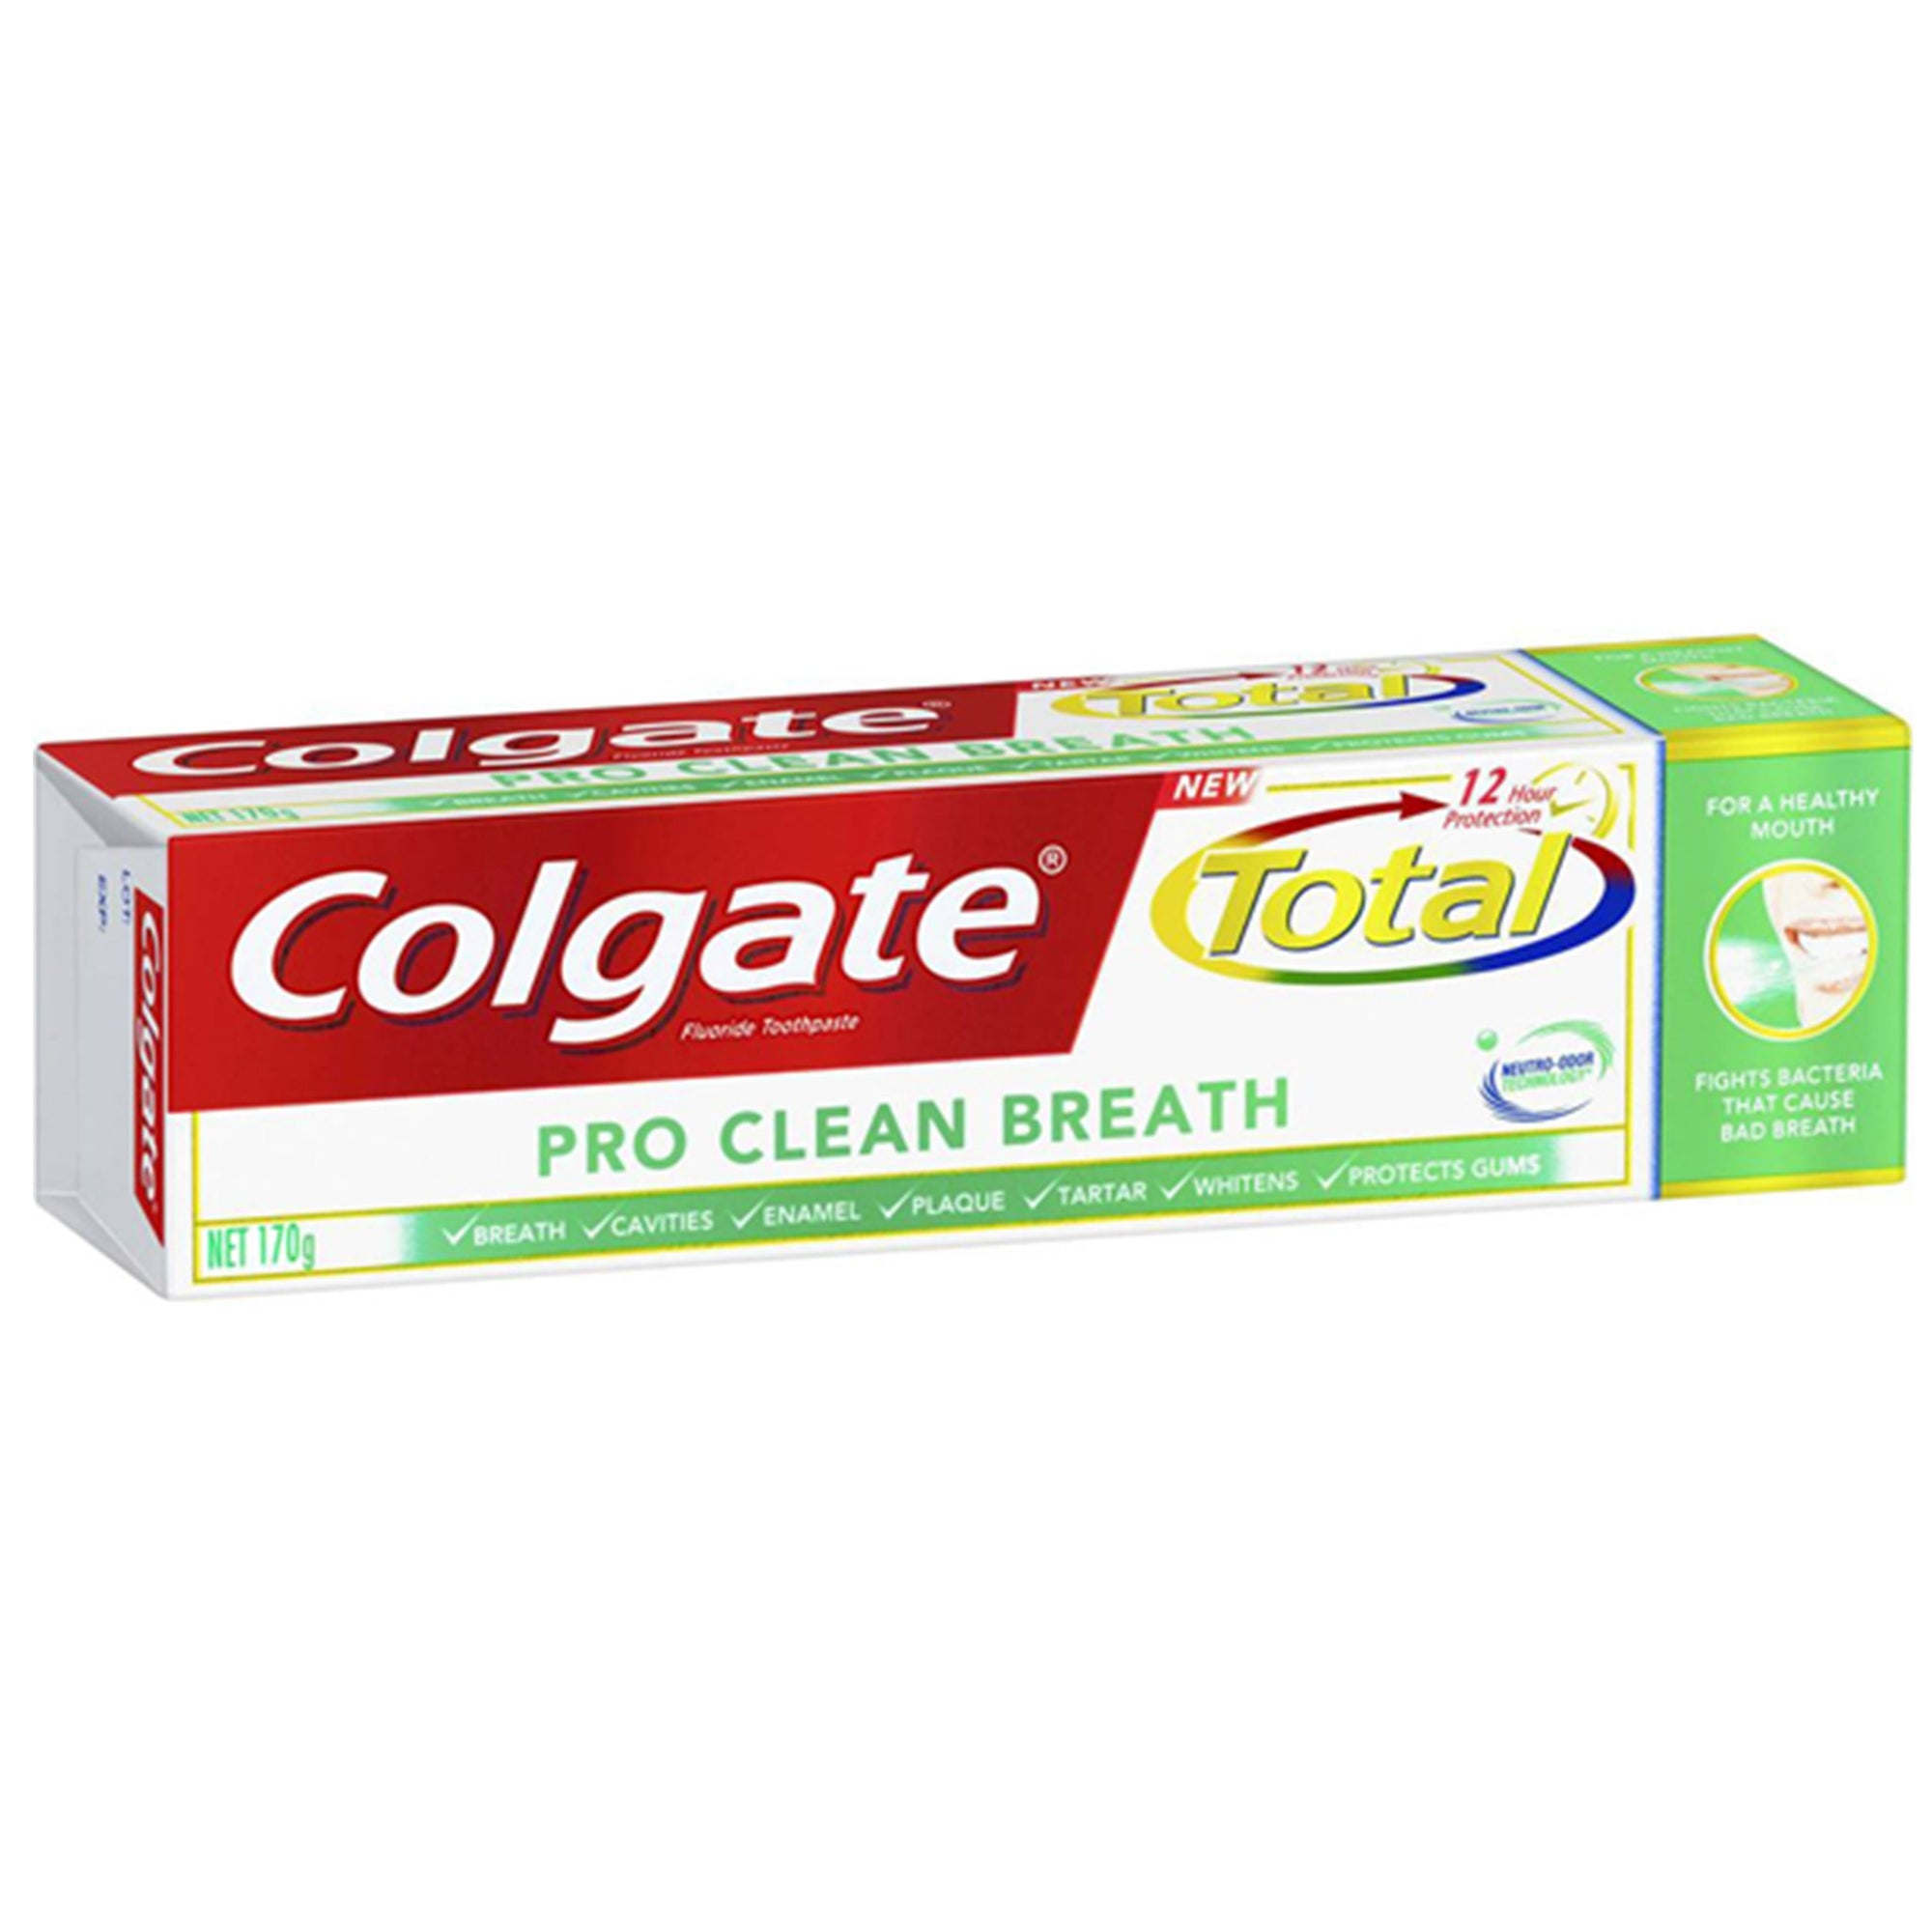 Colgate Total Toothpaste Pro Clean Breath 170G